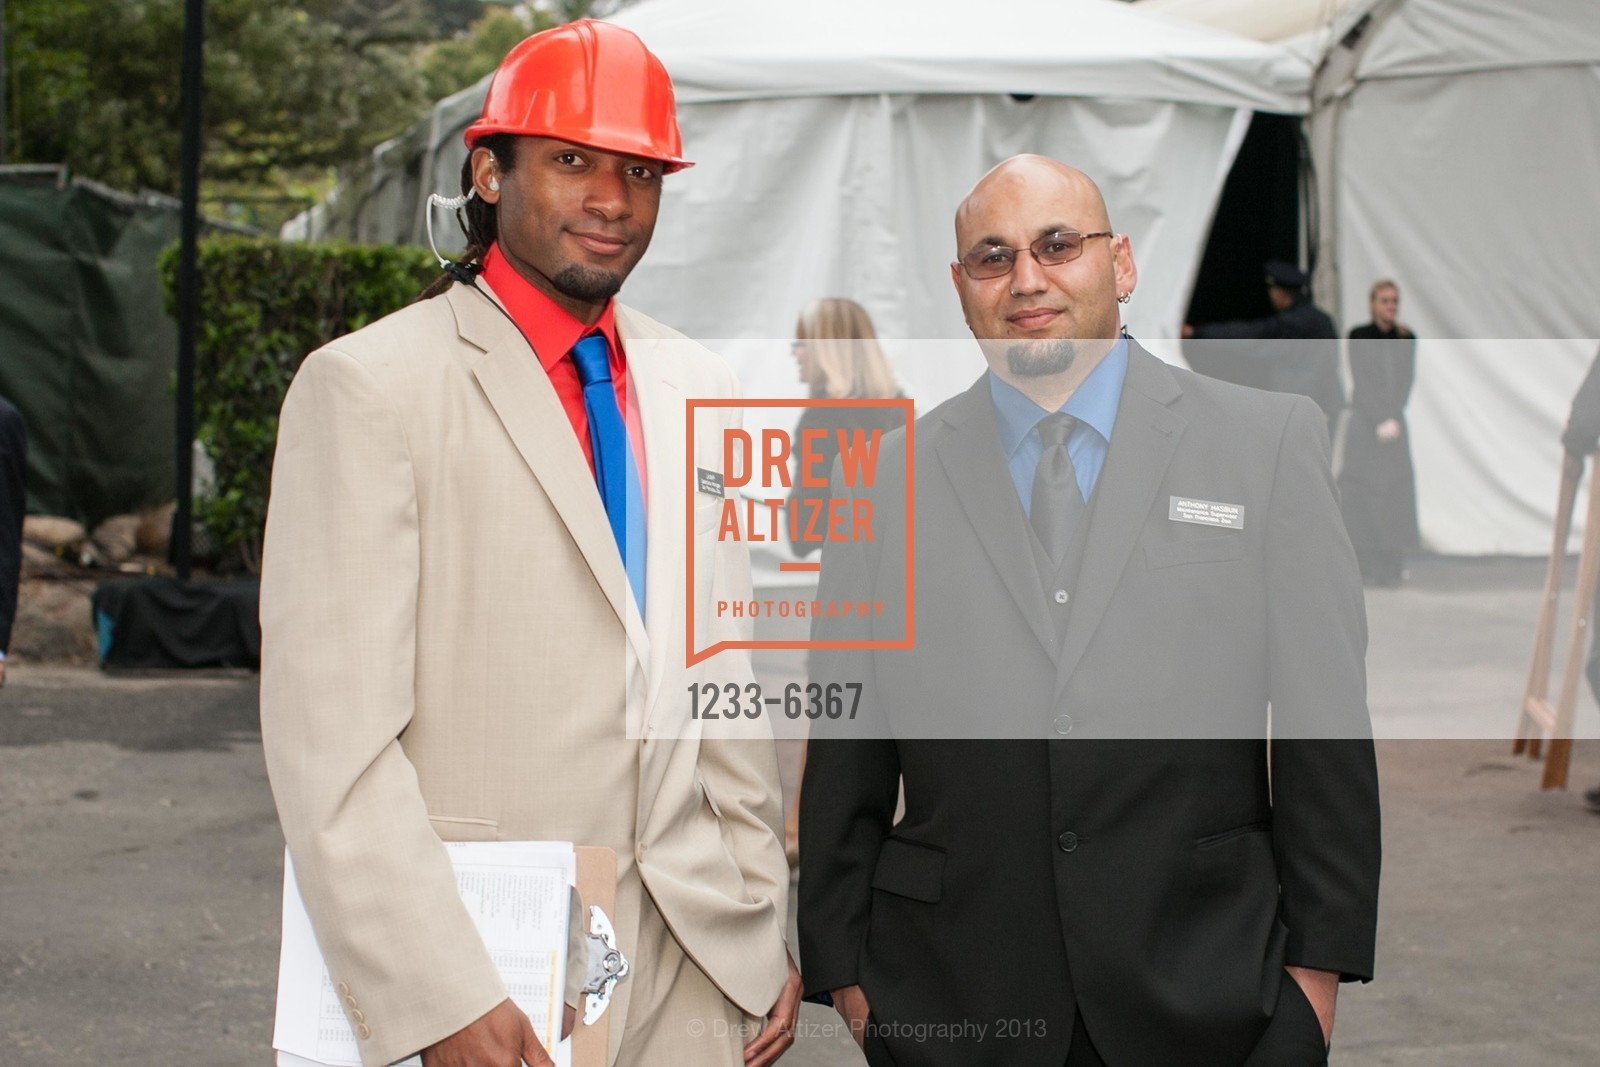 Lamar Harris, Anthony Hasbun, ZooFest 2013 Hard Hat & Tails, US, May 11th, 2013,Drew Altizer, Drew Altizer Photography, full-service agency, private events, San Francisco photographer, photographer california